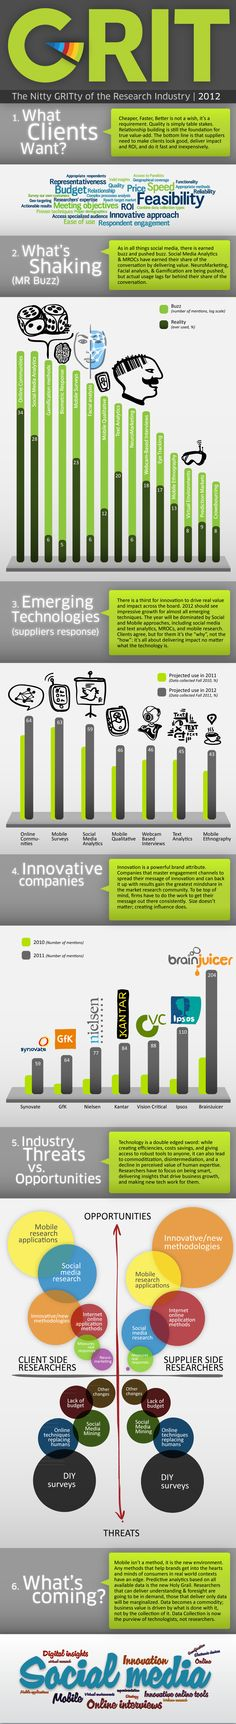 The Nitty GRITty of the Market Research Industry Infographic